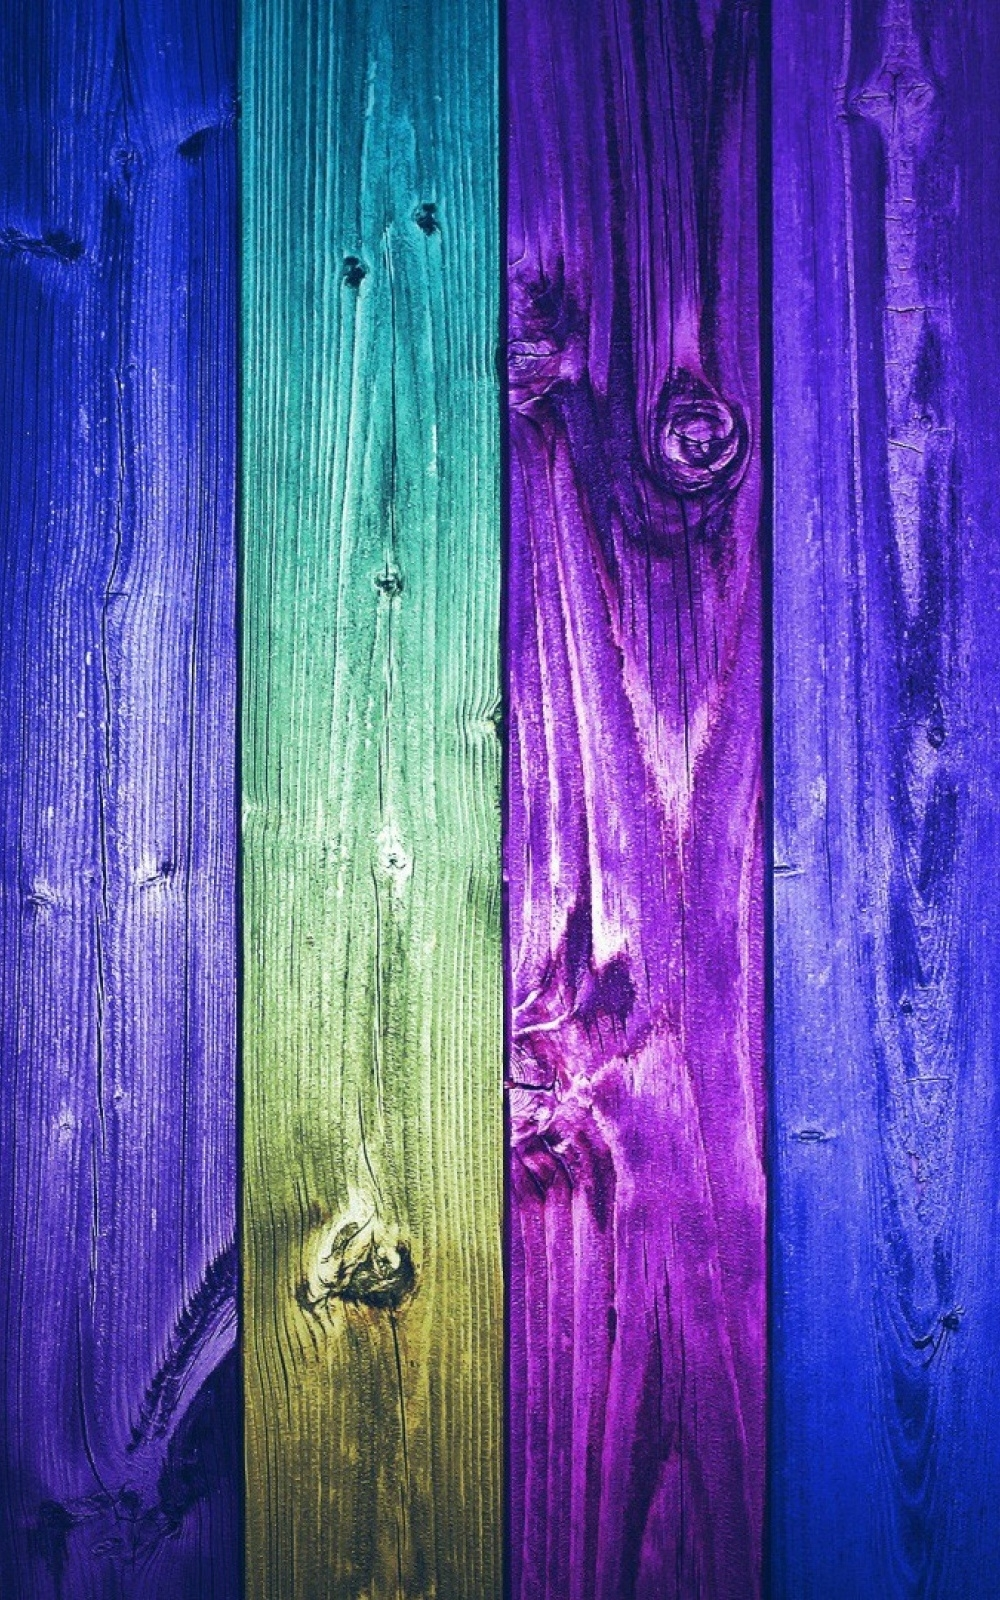 blue purple wooden planks lockscreen android wallpaper free download